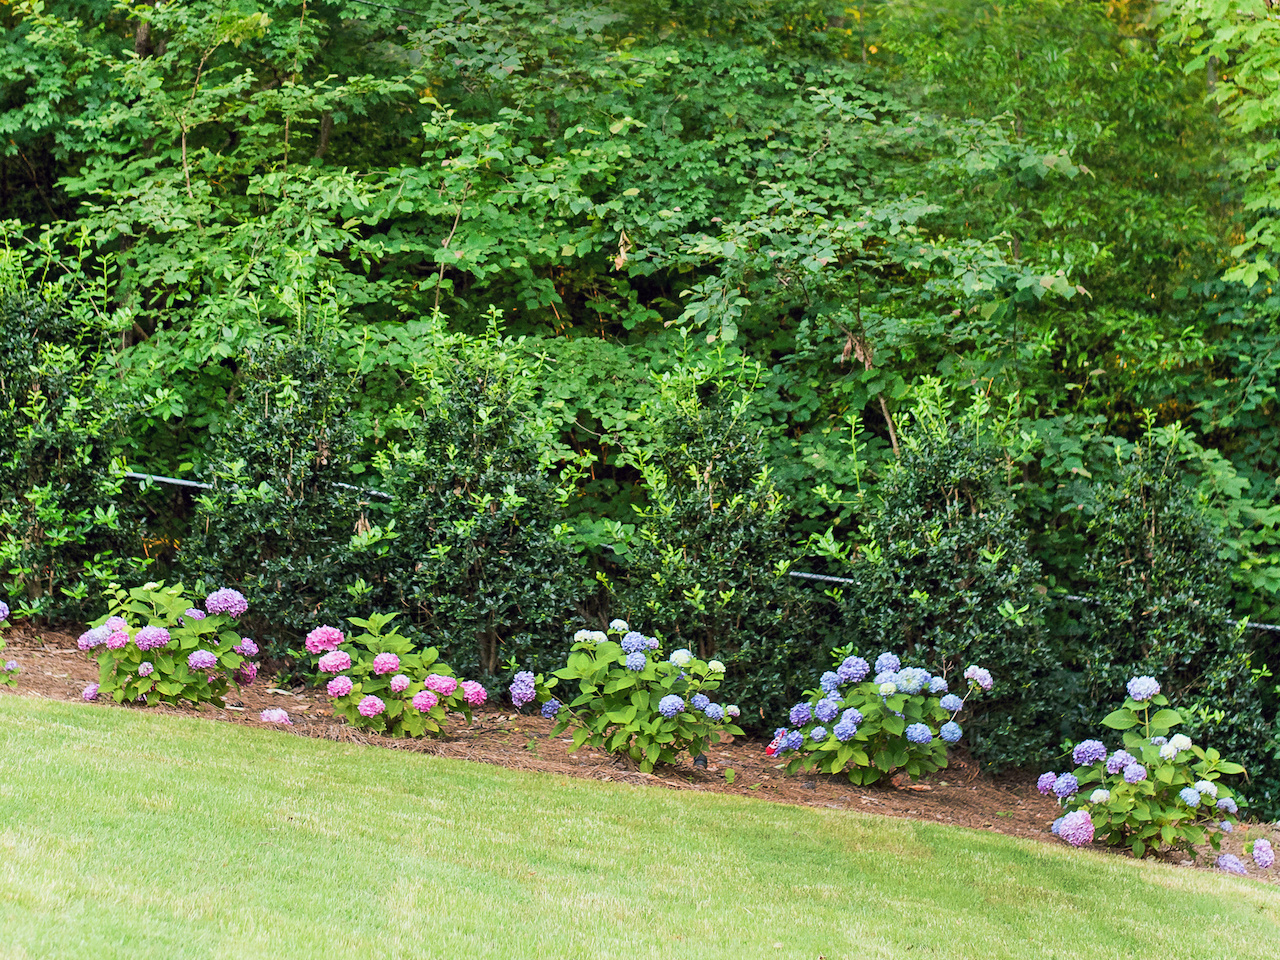 A rainbow of hydrangea decorates the edge of the lawn.